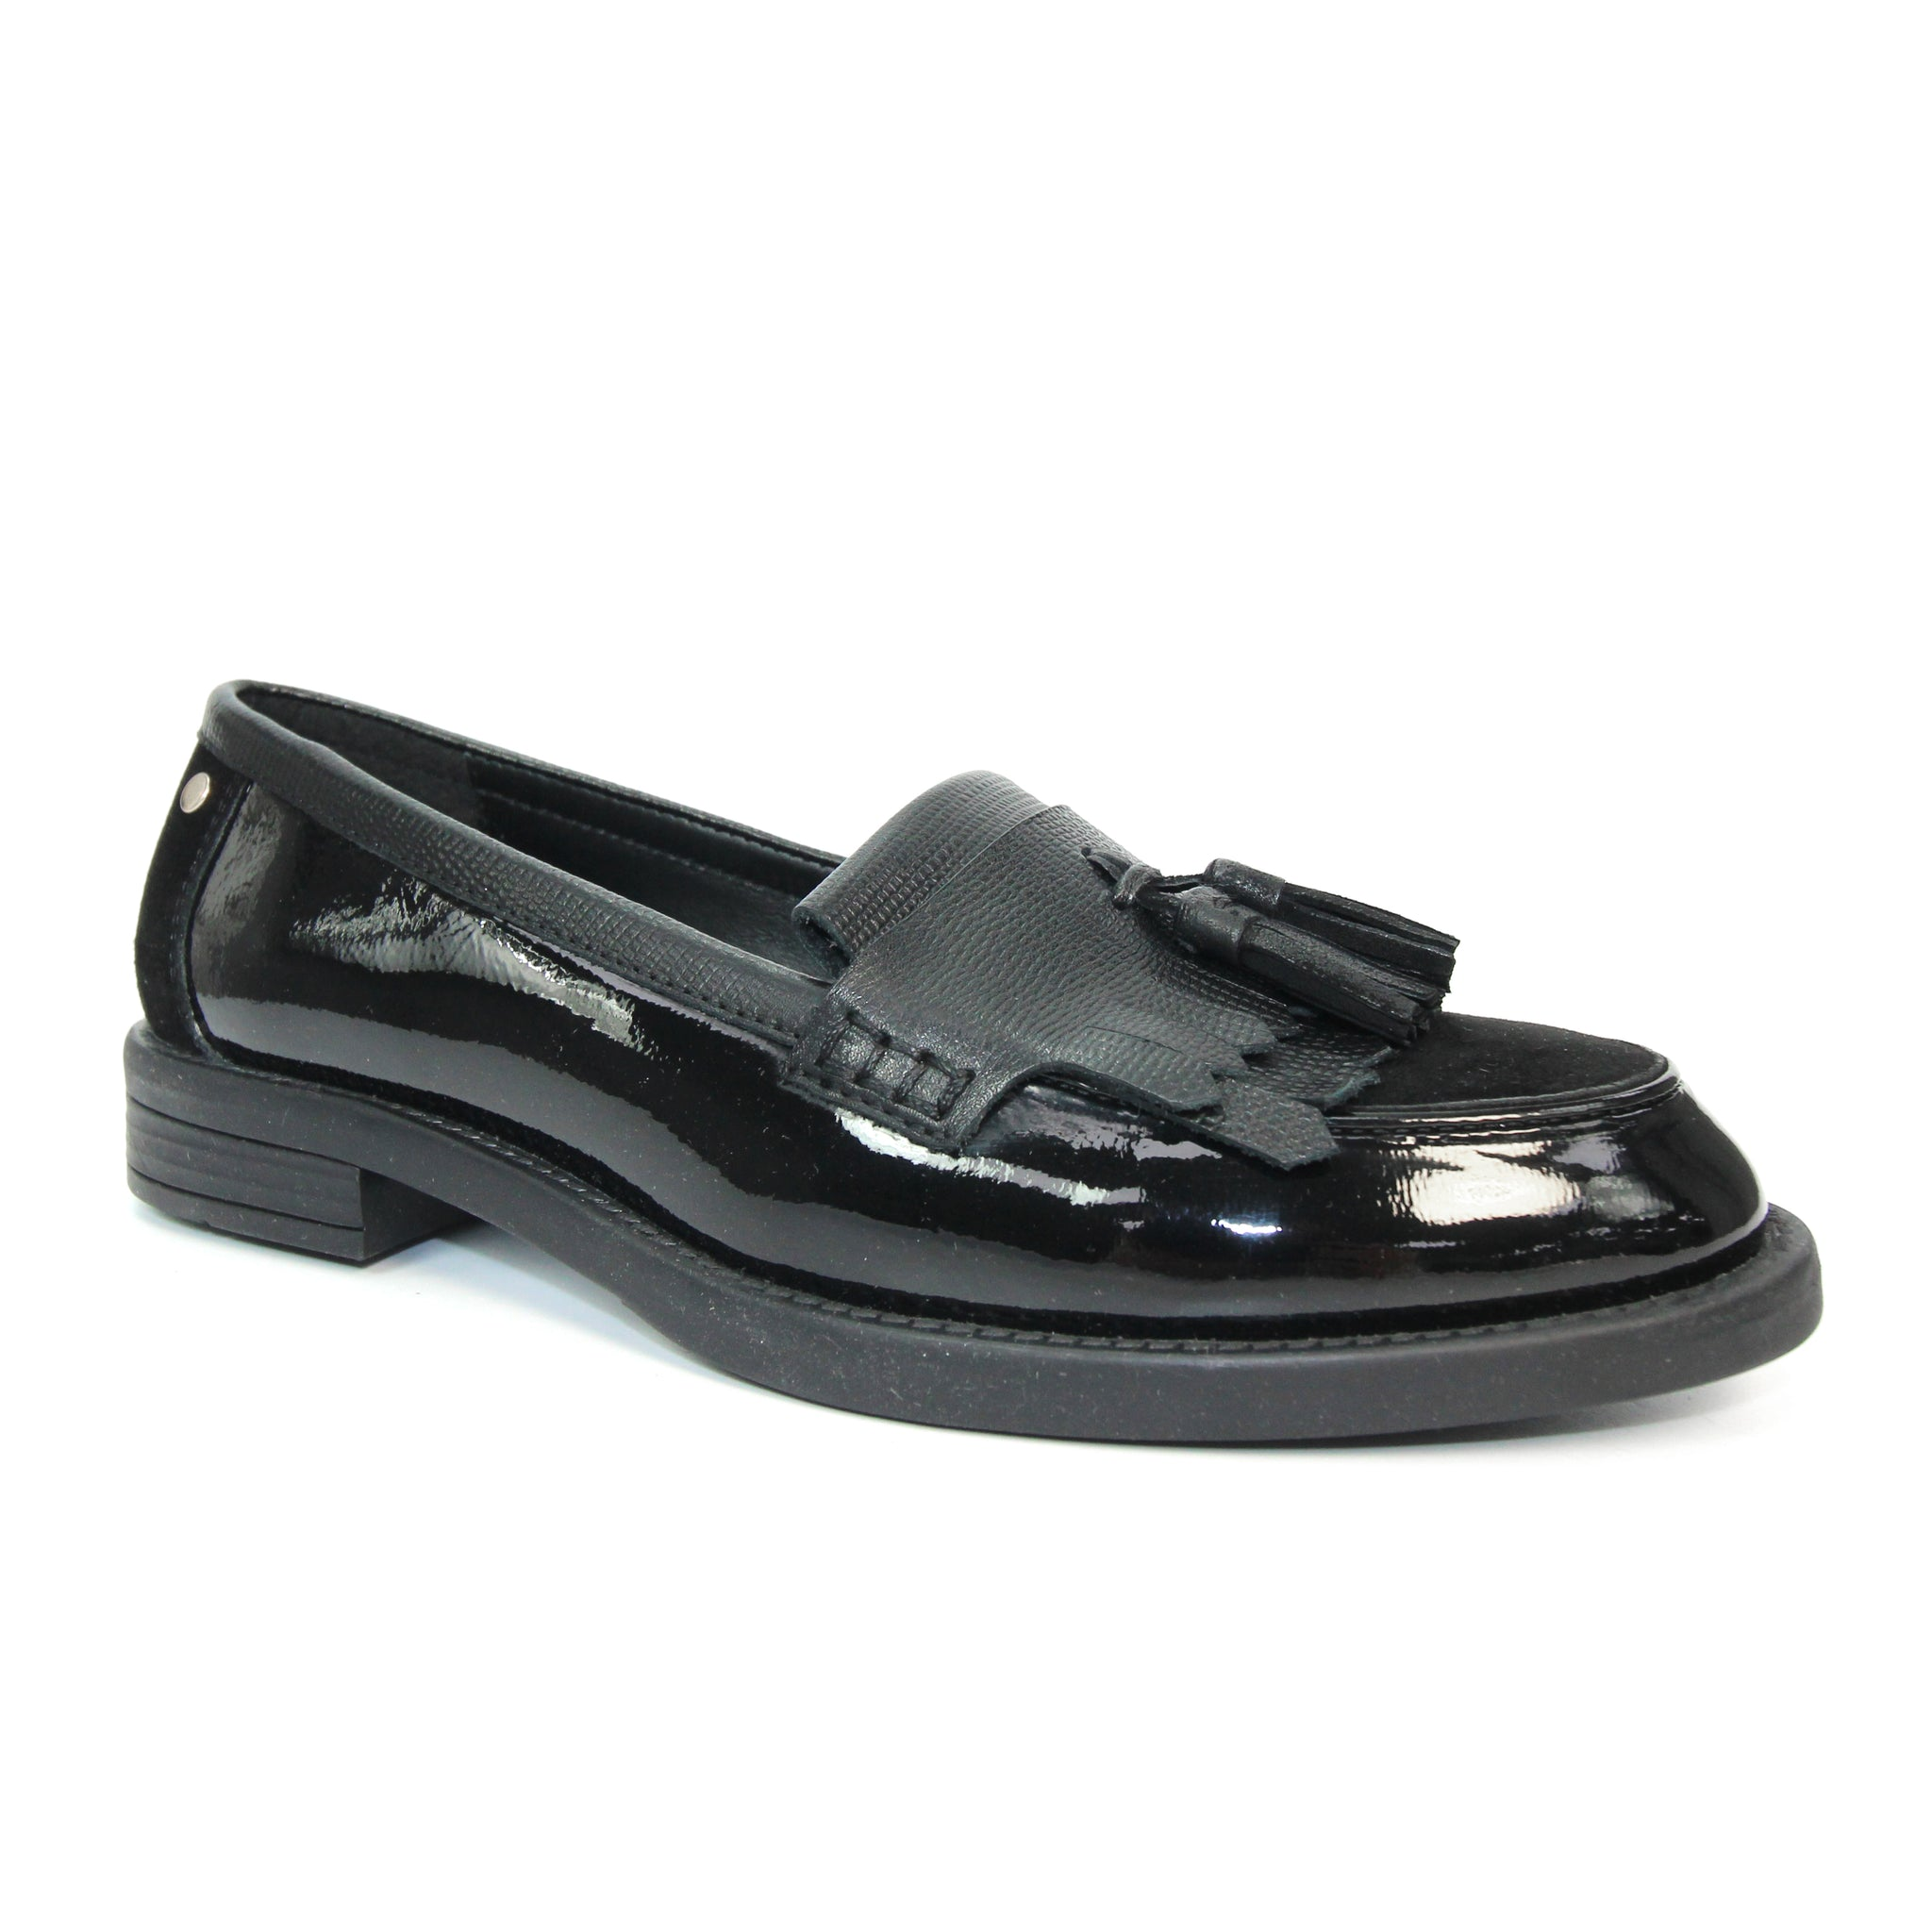 Ladies Lunar Black Leather Loafer Kerry